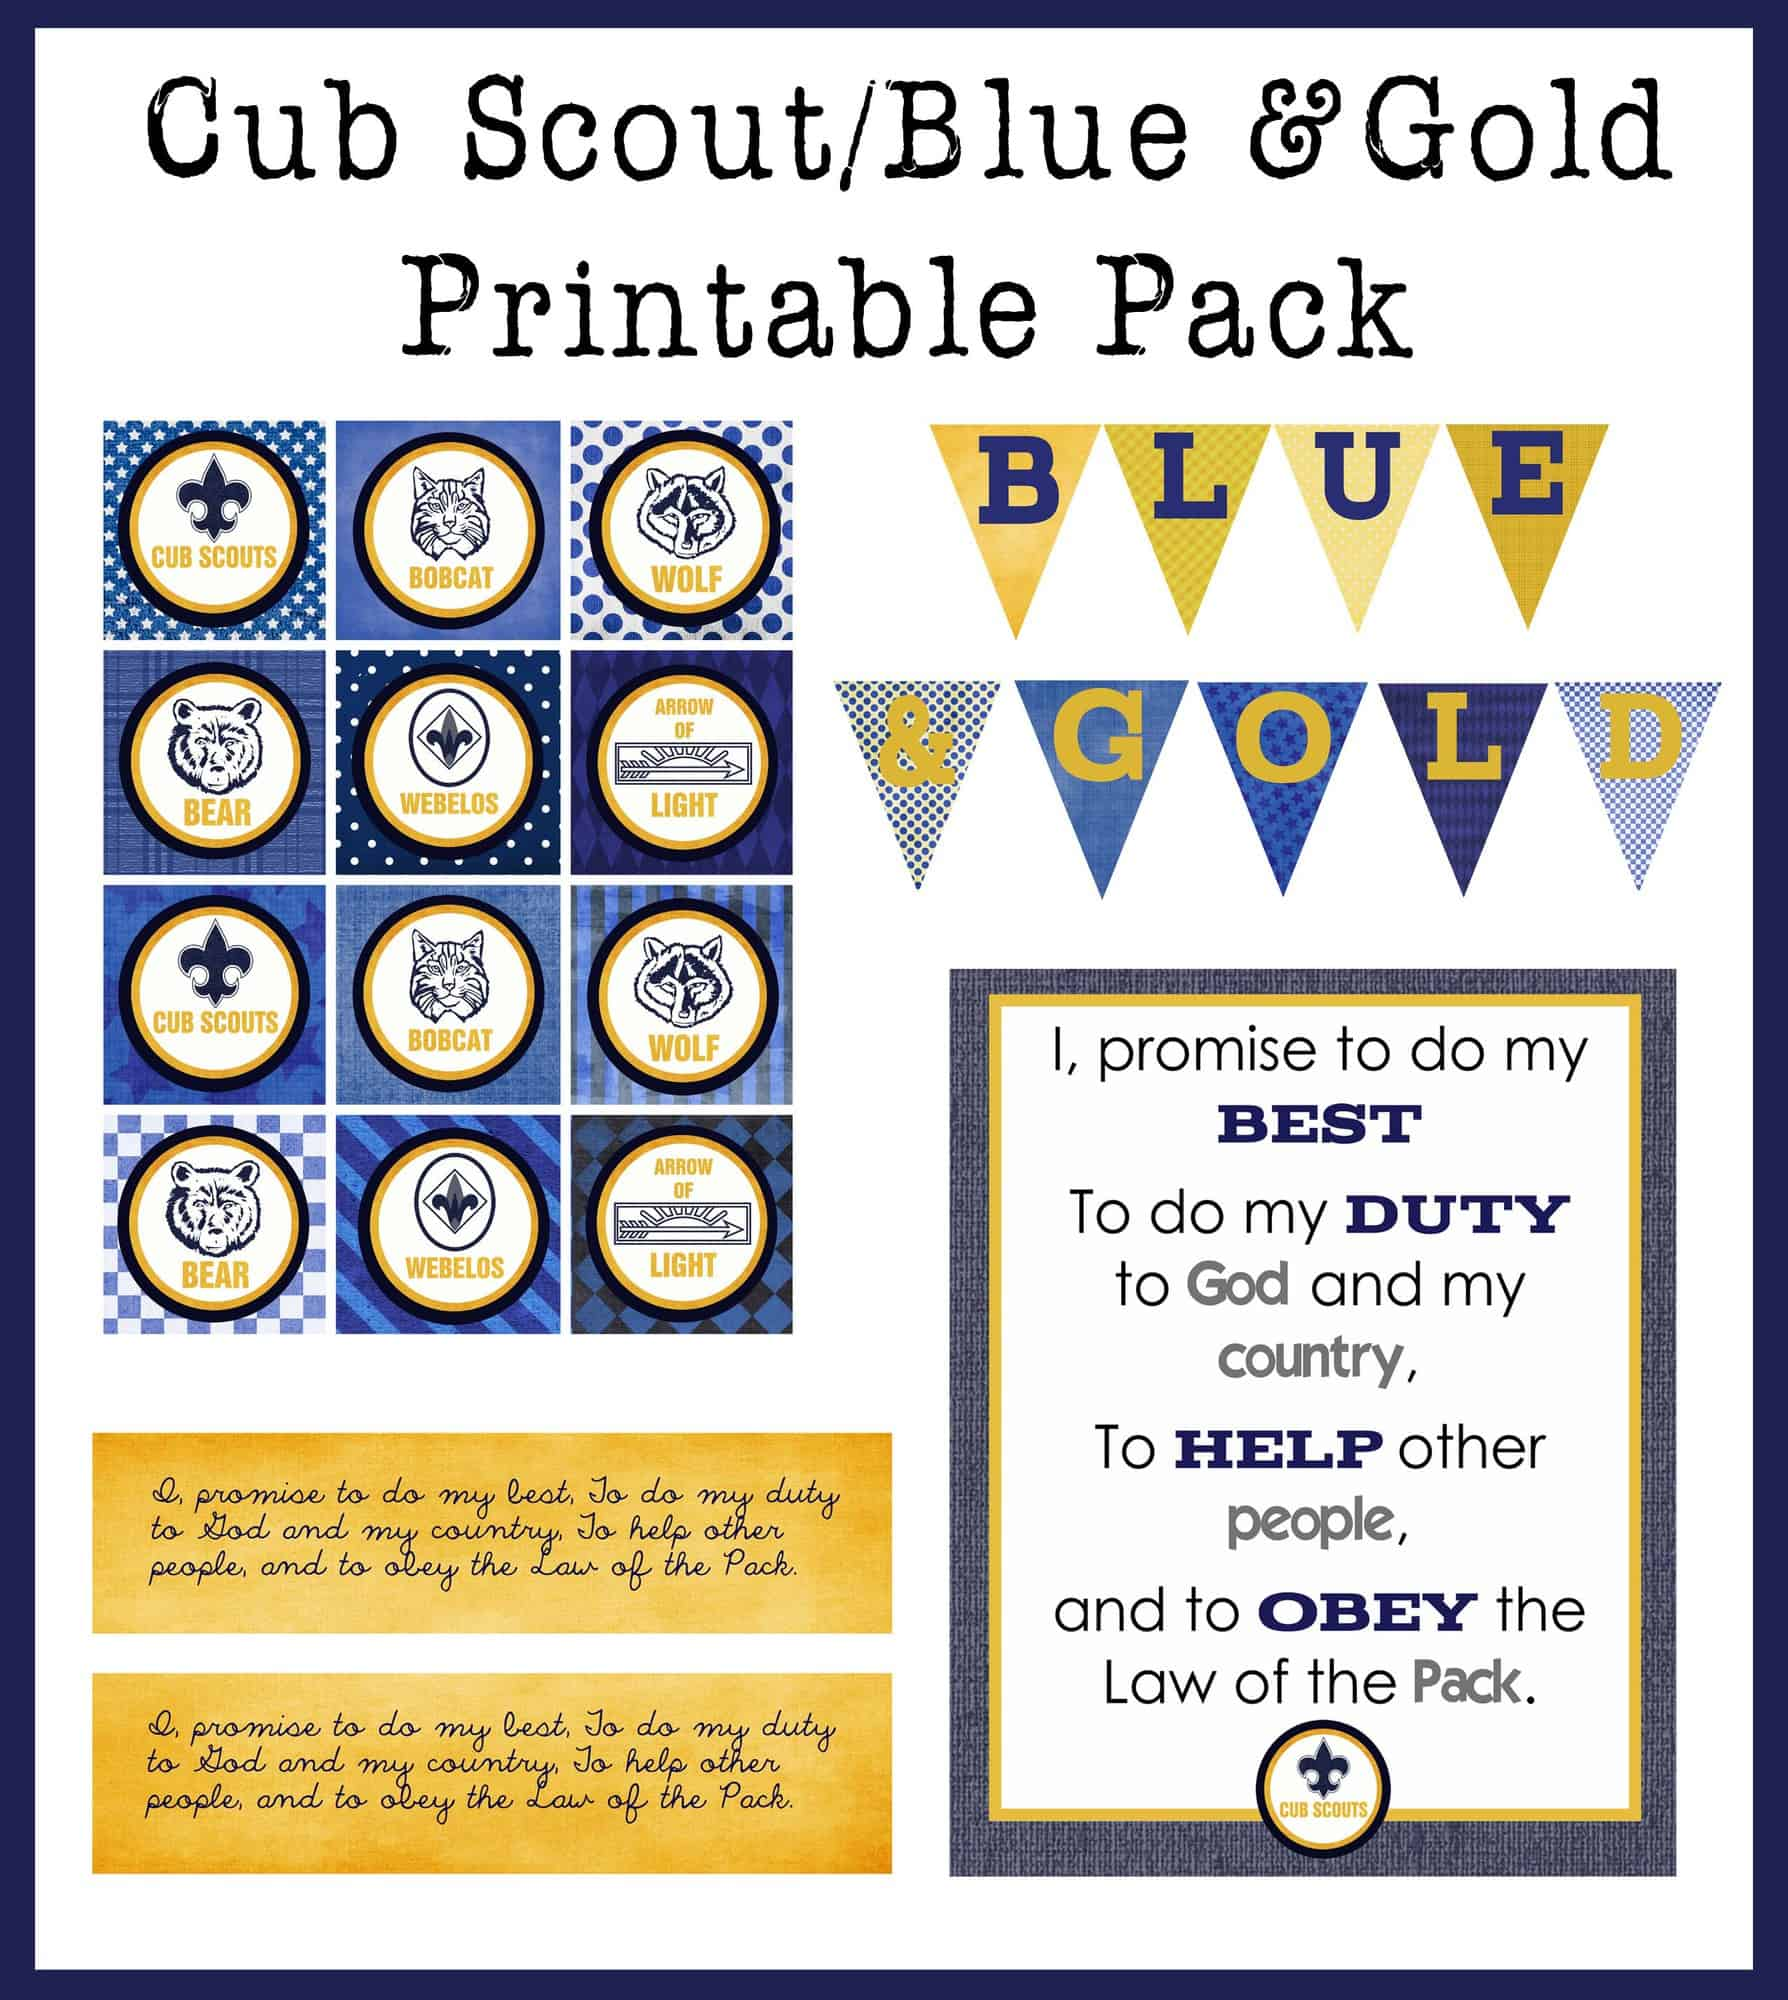 graphic regarding Cub Scout Printable known as Blue Gold Printable Pack